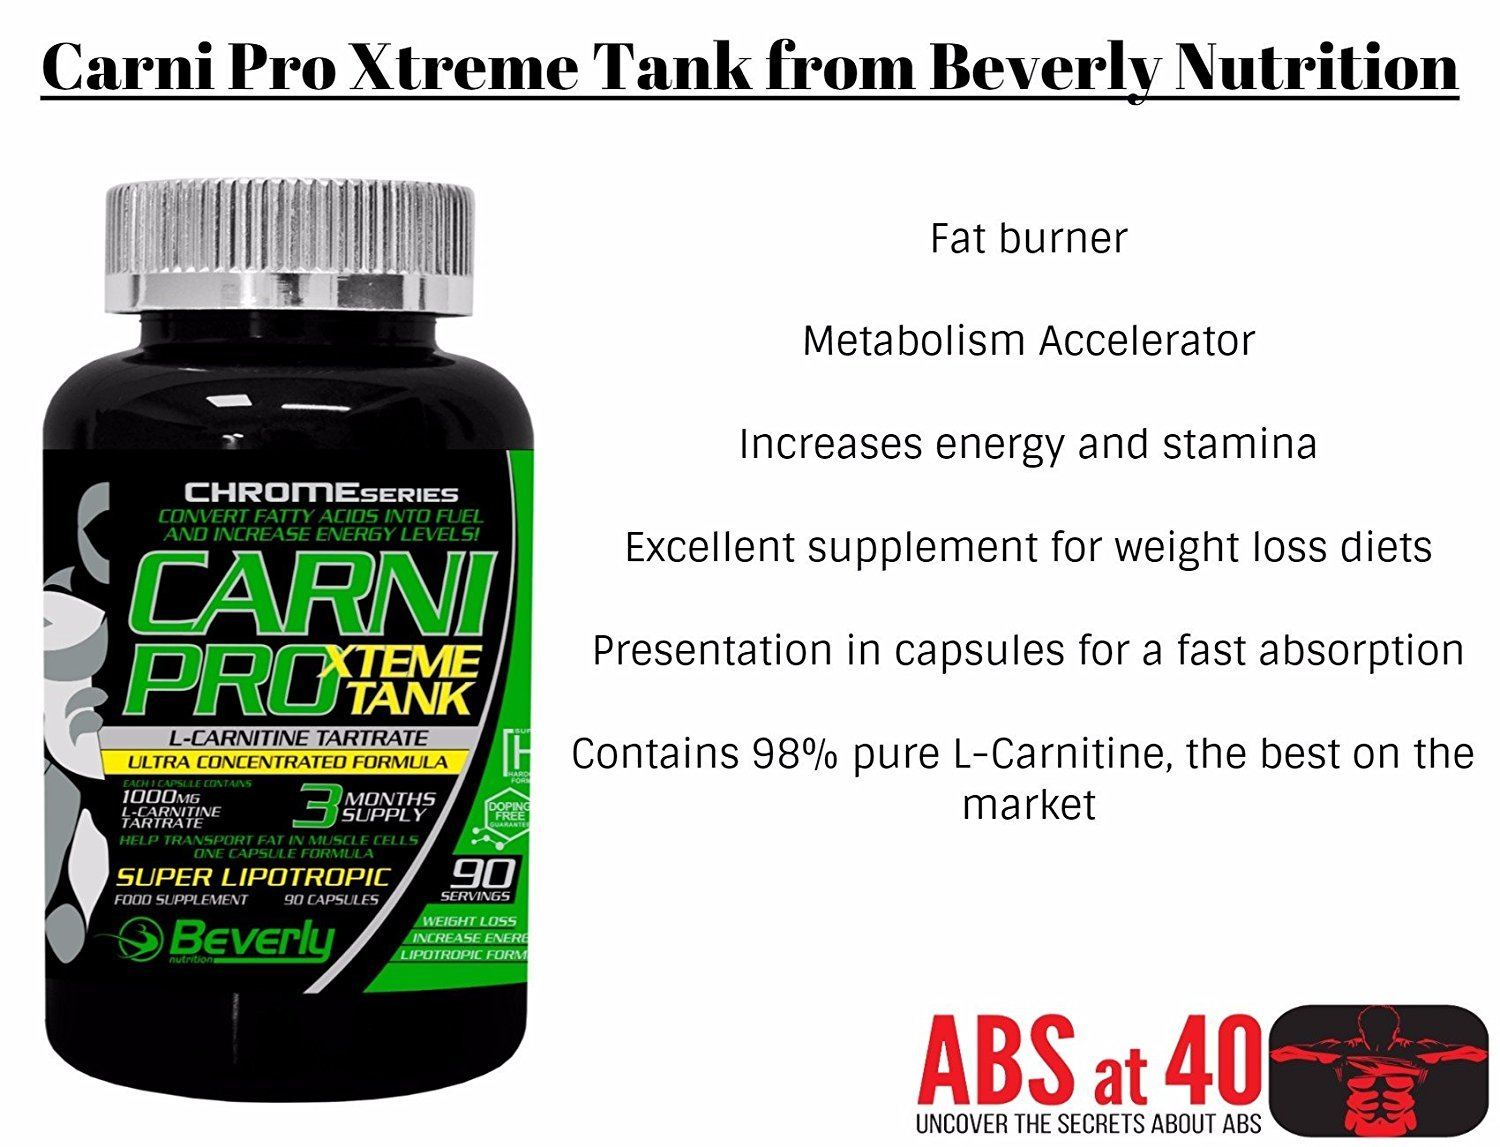 Amazon.com: Beverly Nutrition Exclusive For ABSat40 Carni Pro Xtreme Tank - highly effective energizer and fat burner - Metabolism Accelerator - Contains ...